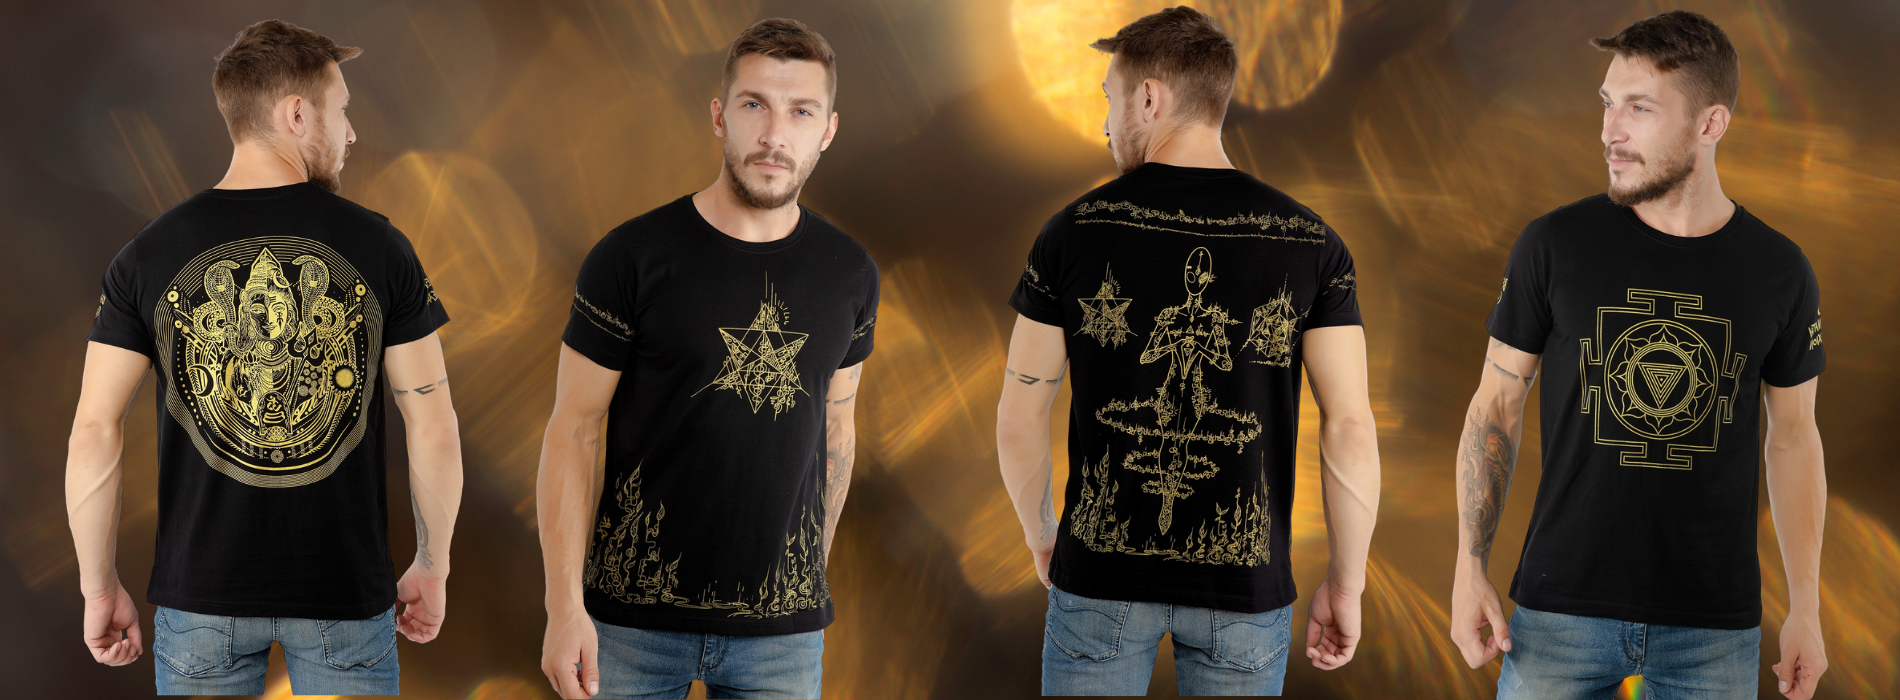 Trippy T Shirts For Men